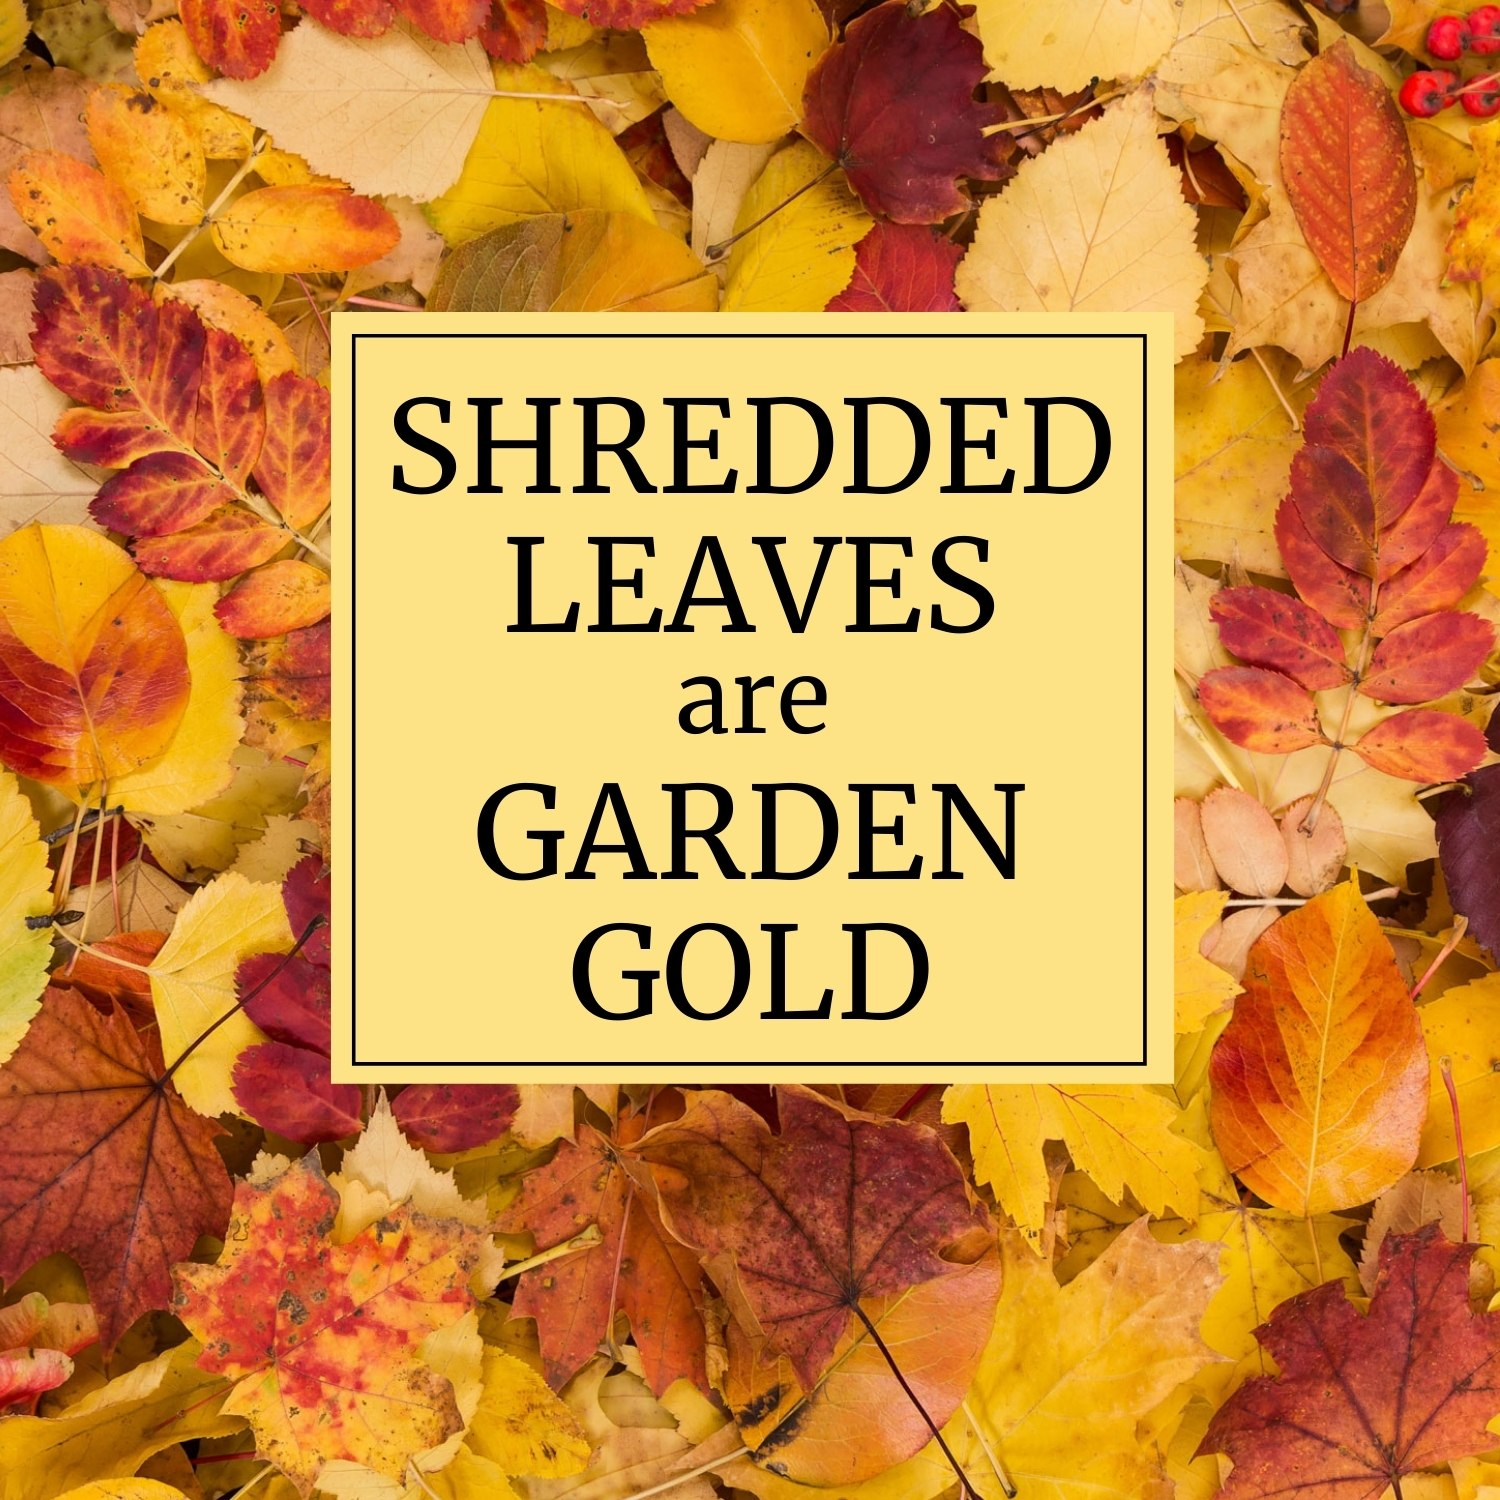 Shredded Leaves are Garden Gold